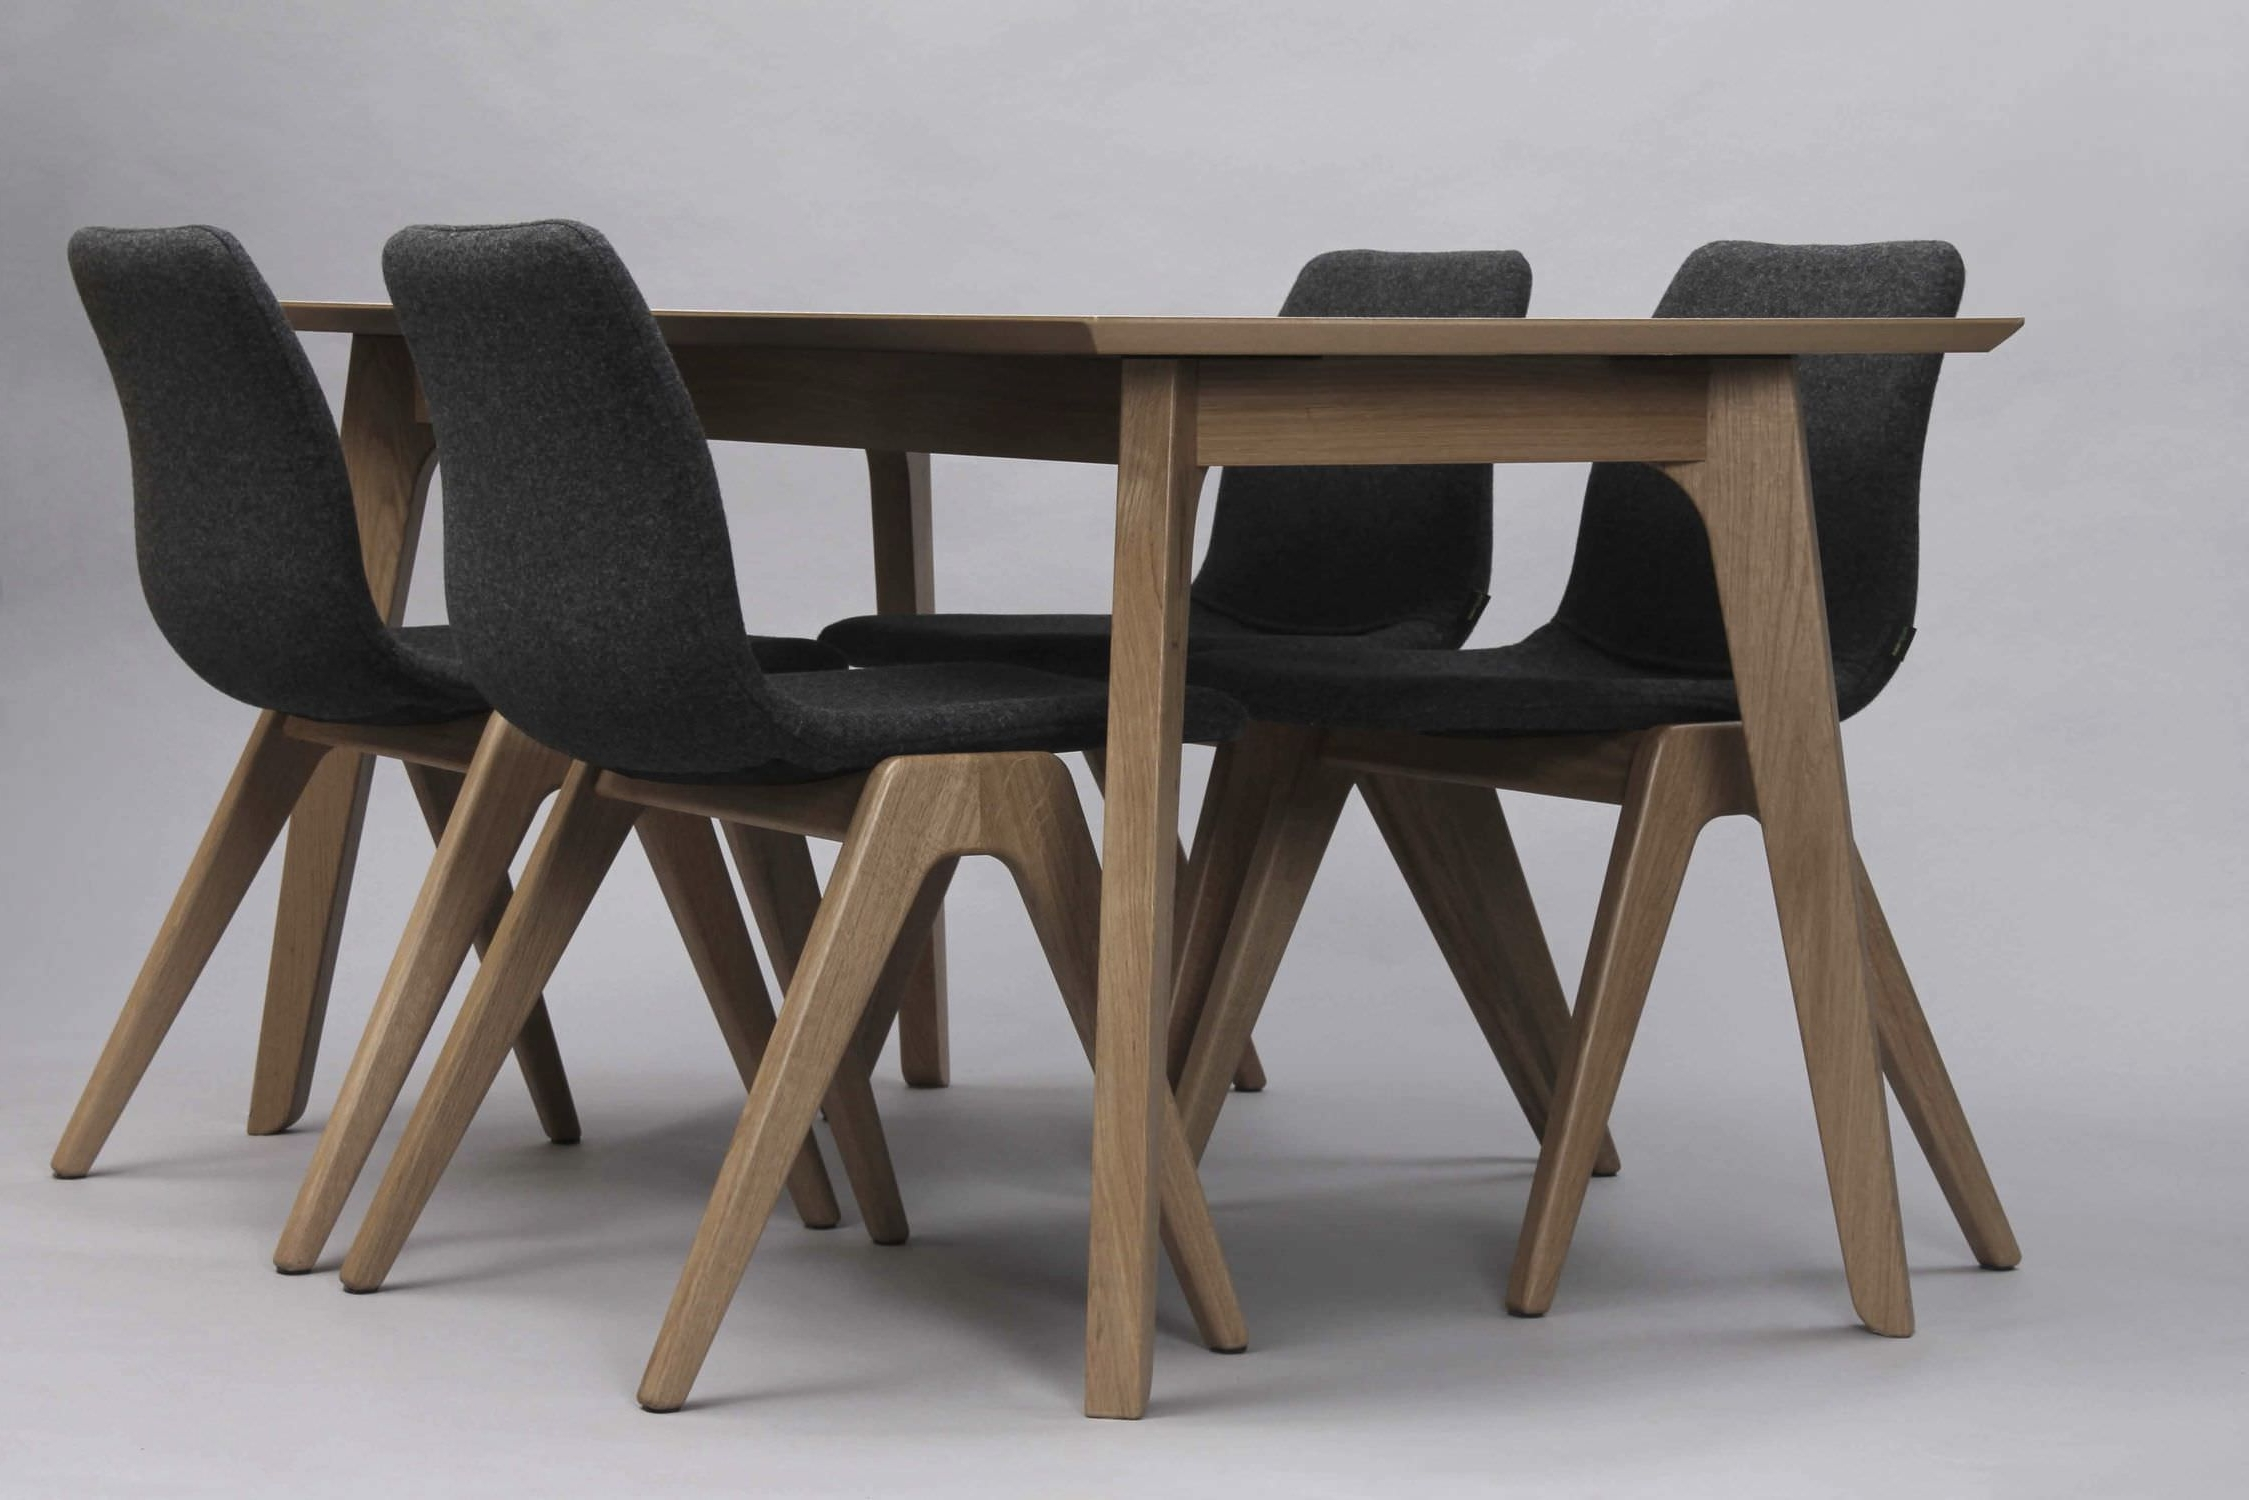 Solid Oak Dining Tables Within Well Known Contemporary Dining Table / Oak / Solid Wood / Rectangular – Dalby (View 25 of 25)